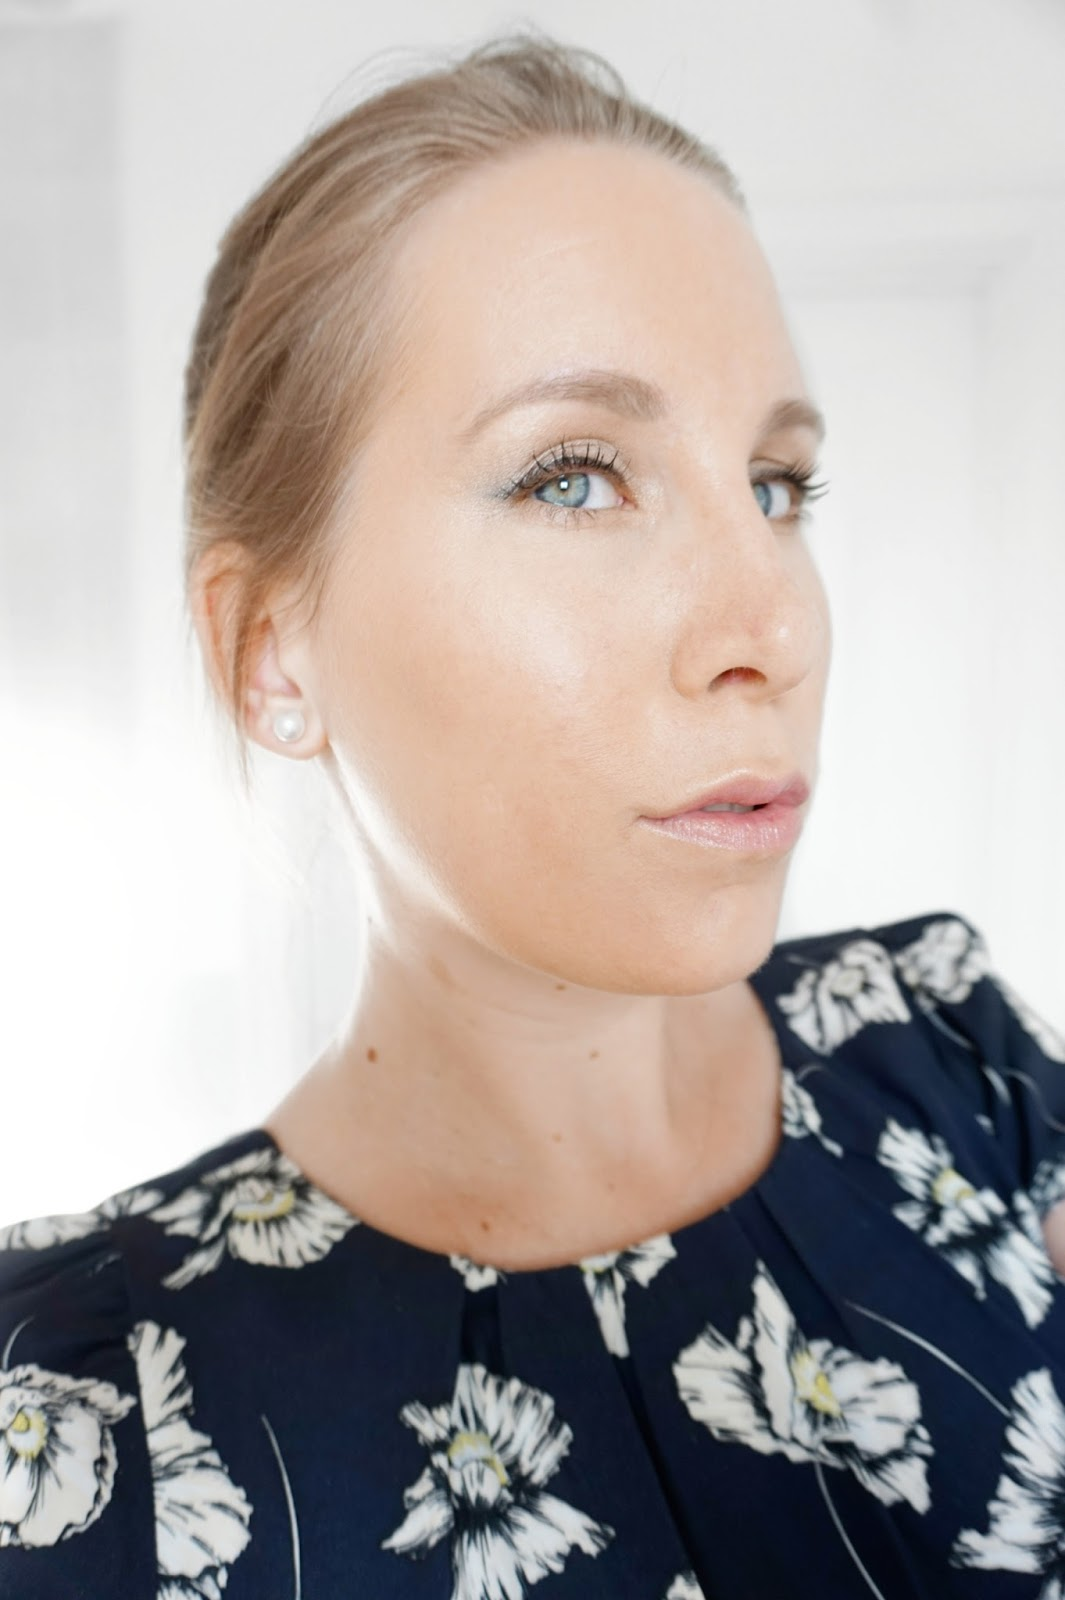 Jane_Iredale_Full_Face_Sideways_Selfie